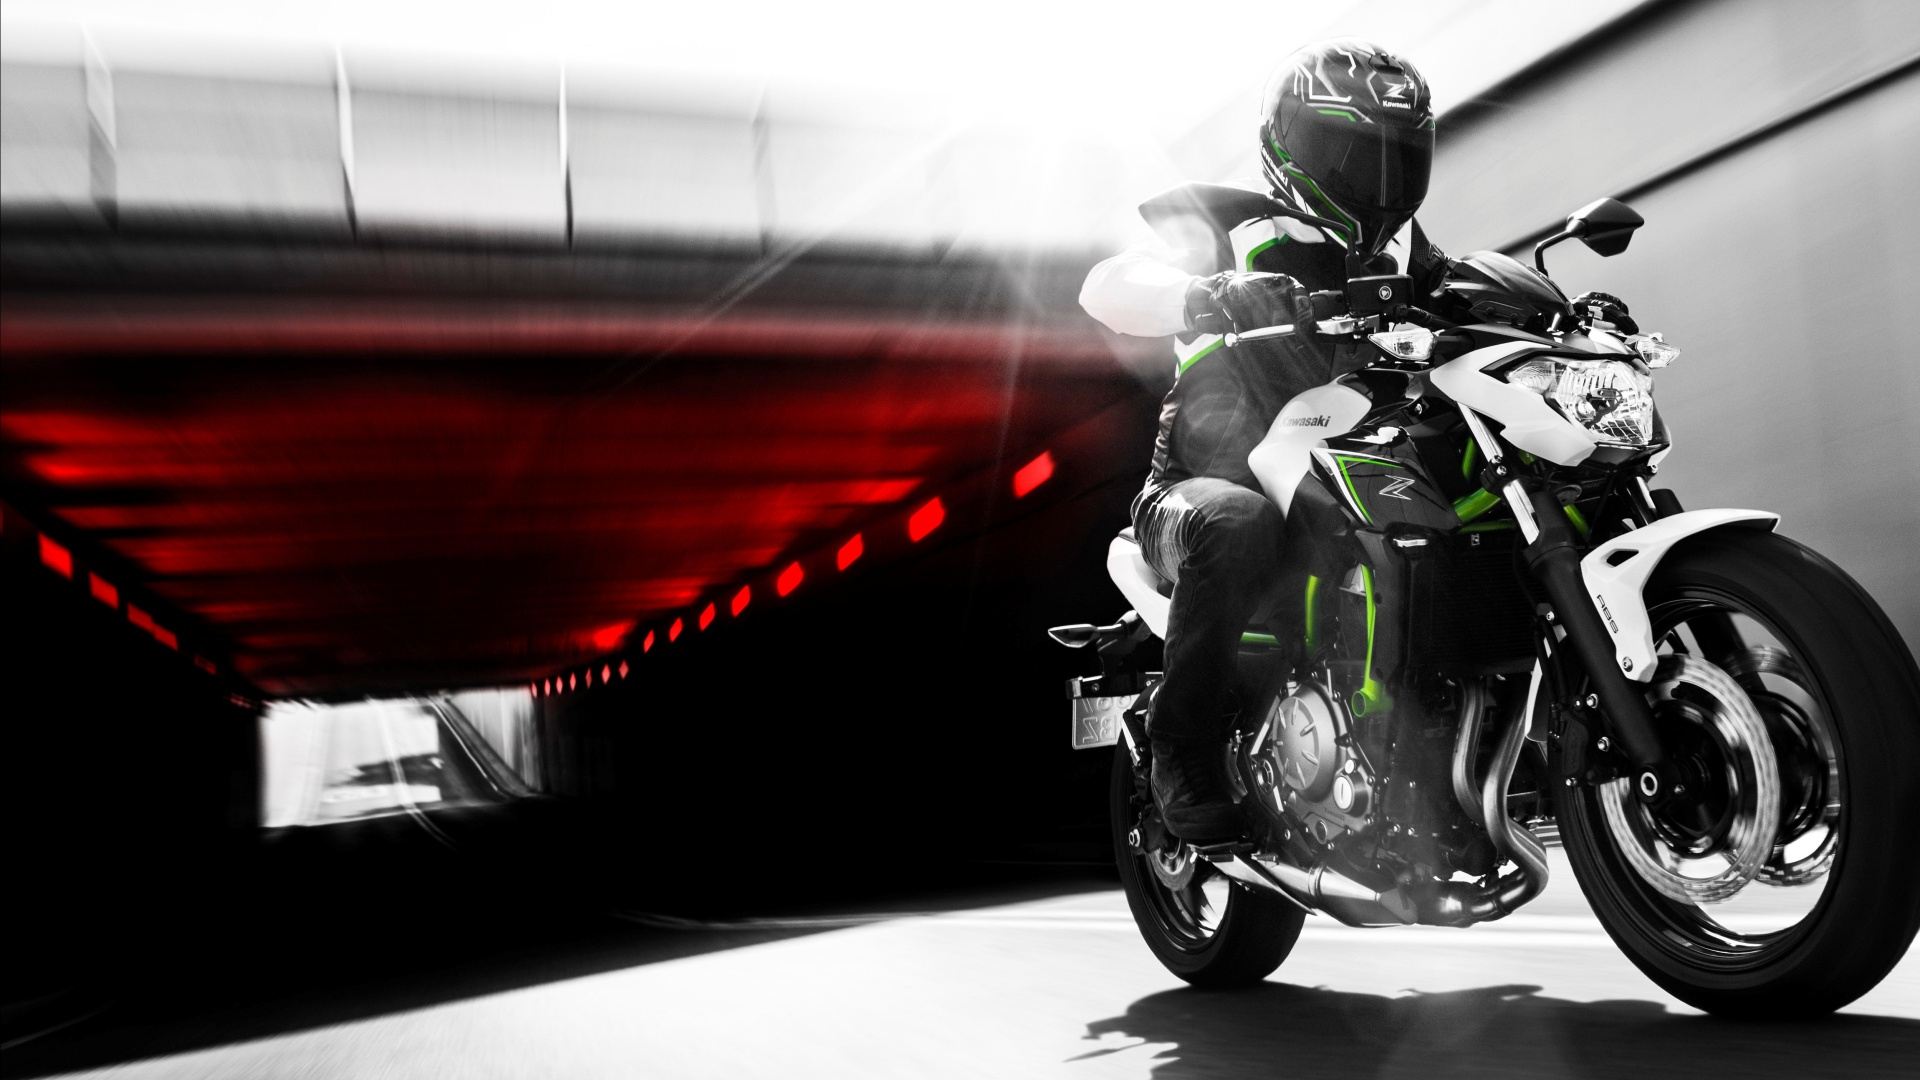 Kawasaki Wallpaper Desktop